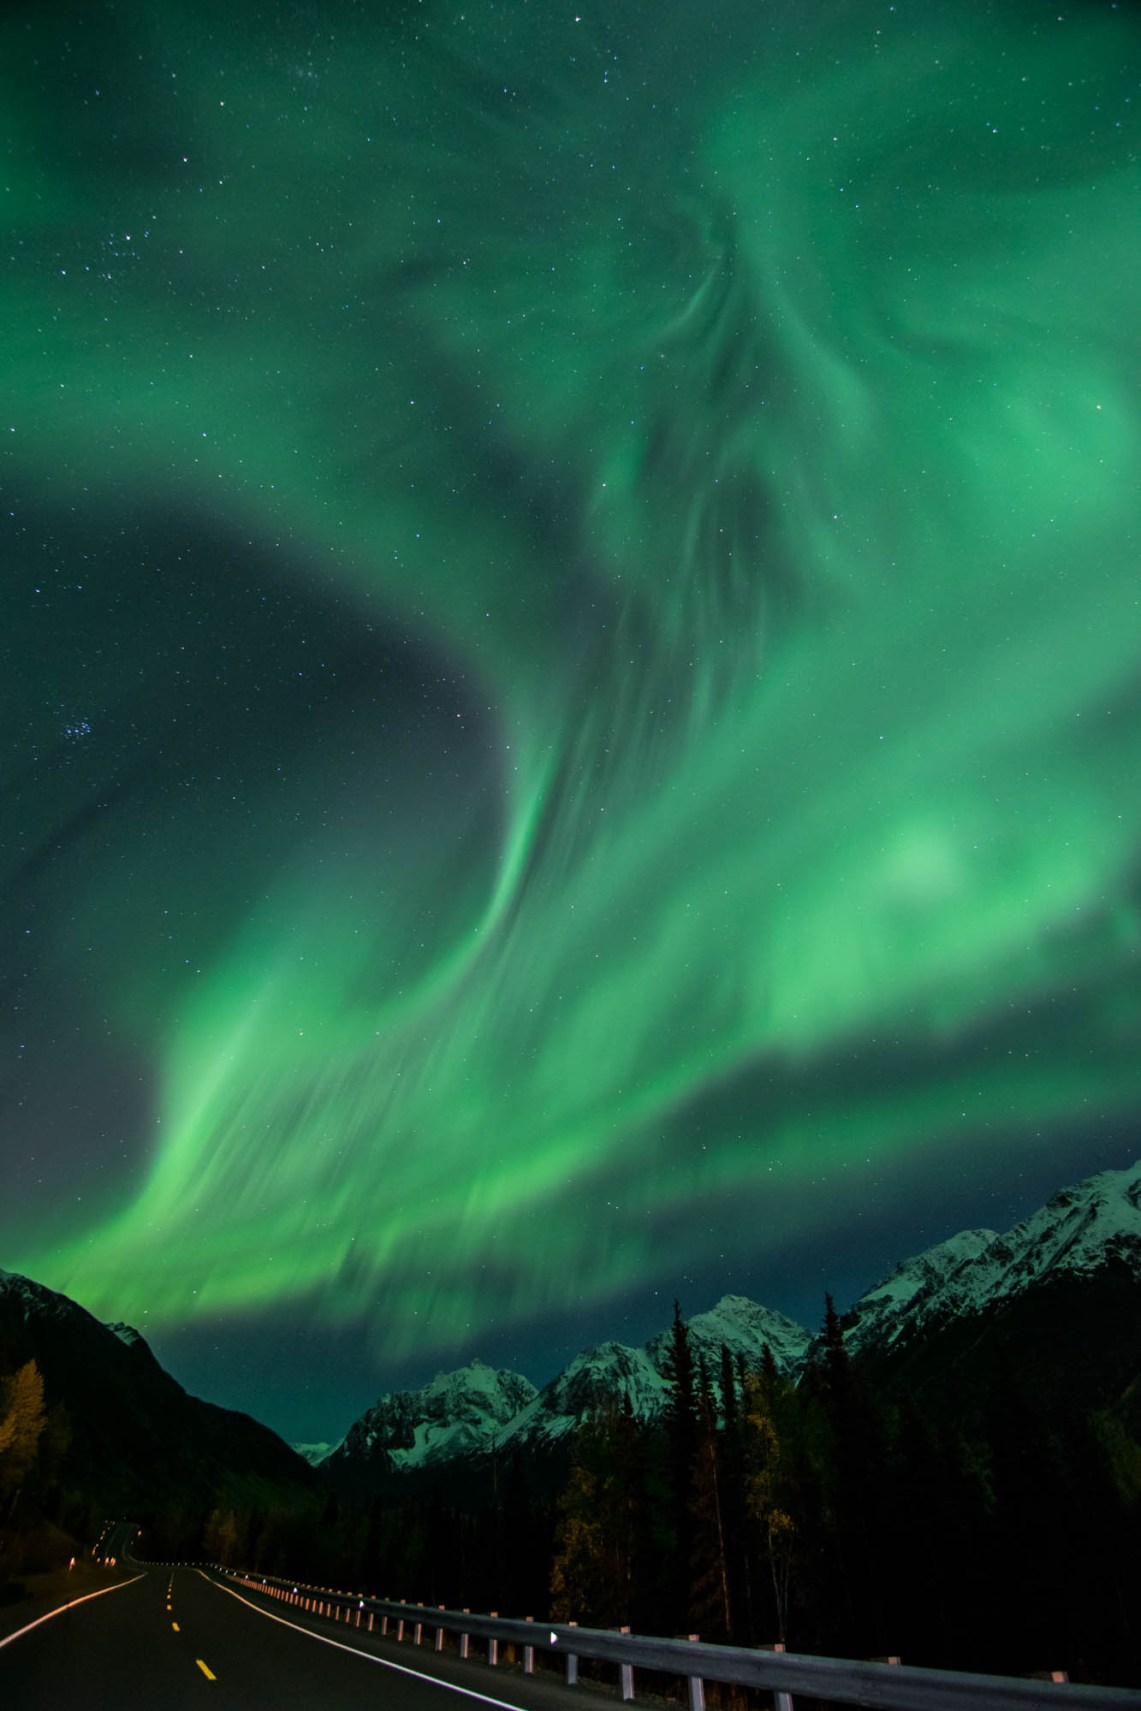 Bright green northern lights burst over a forest road in alaska. A street light illuminates the road. Stars shine overhead. The orientaion is vertical